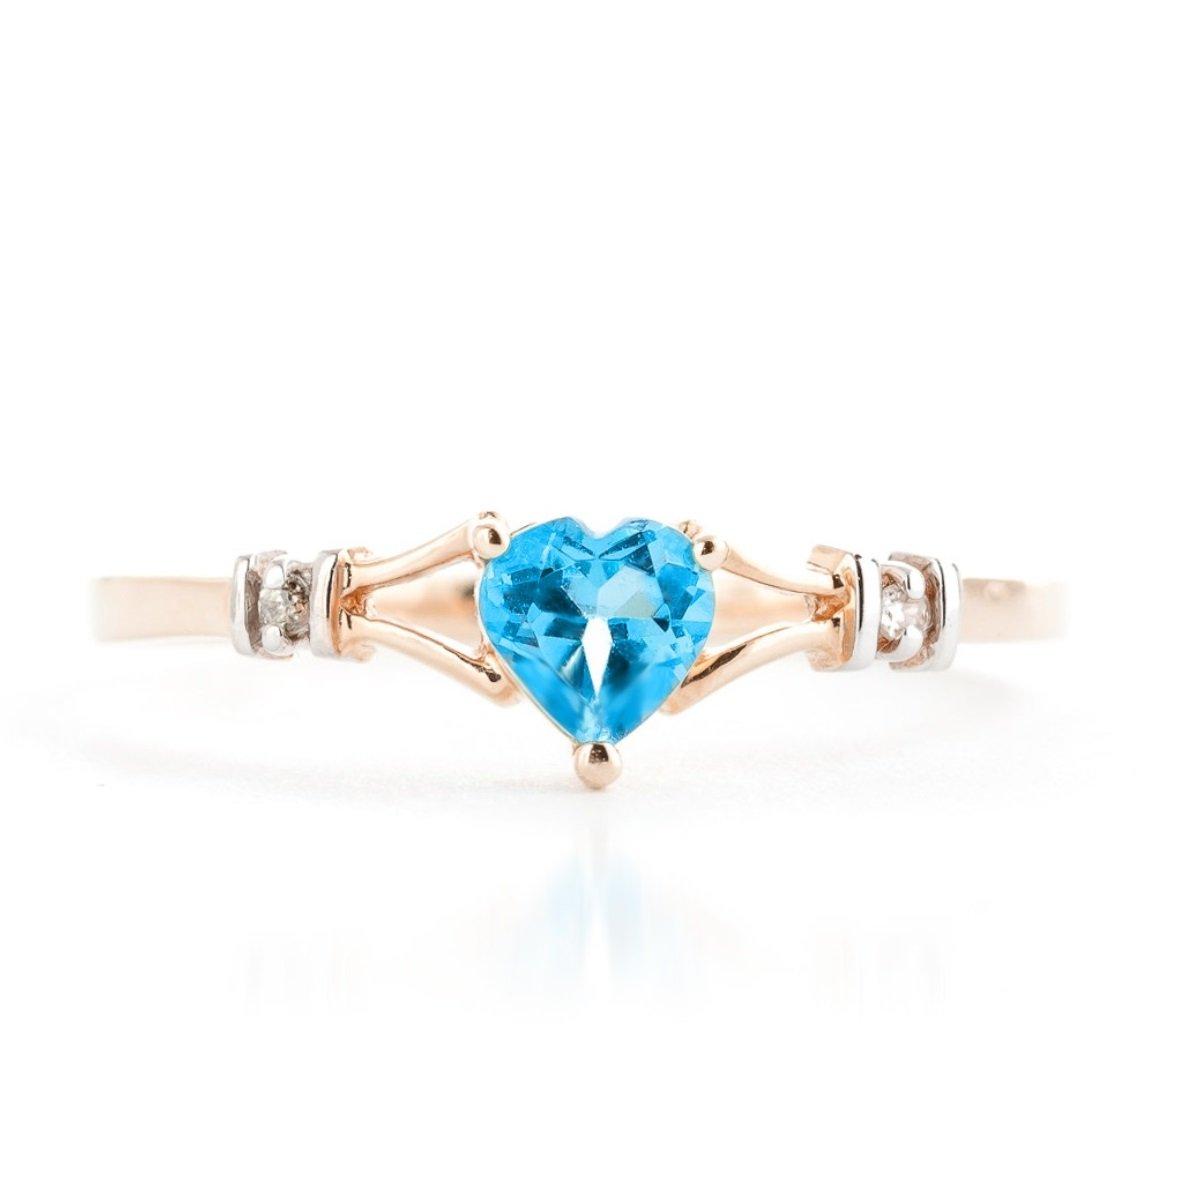 Blue Topaz Heart Diamond Ring Solid 14k Rose Gold 1277-R